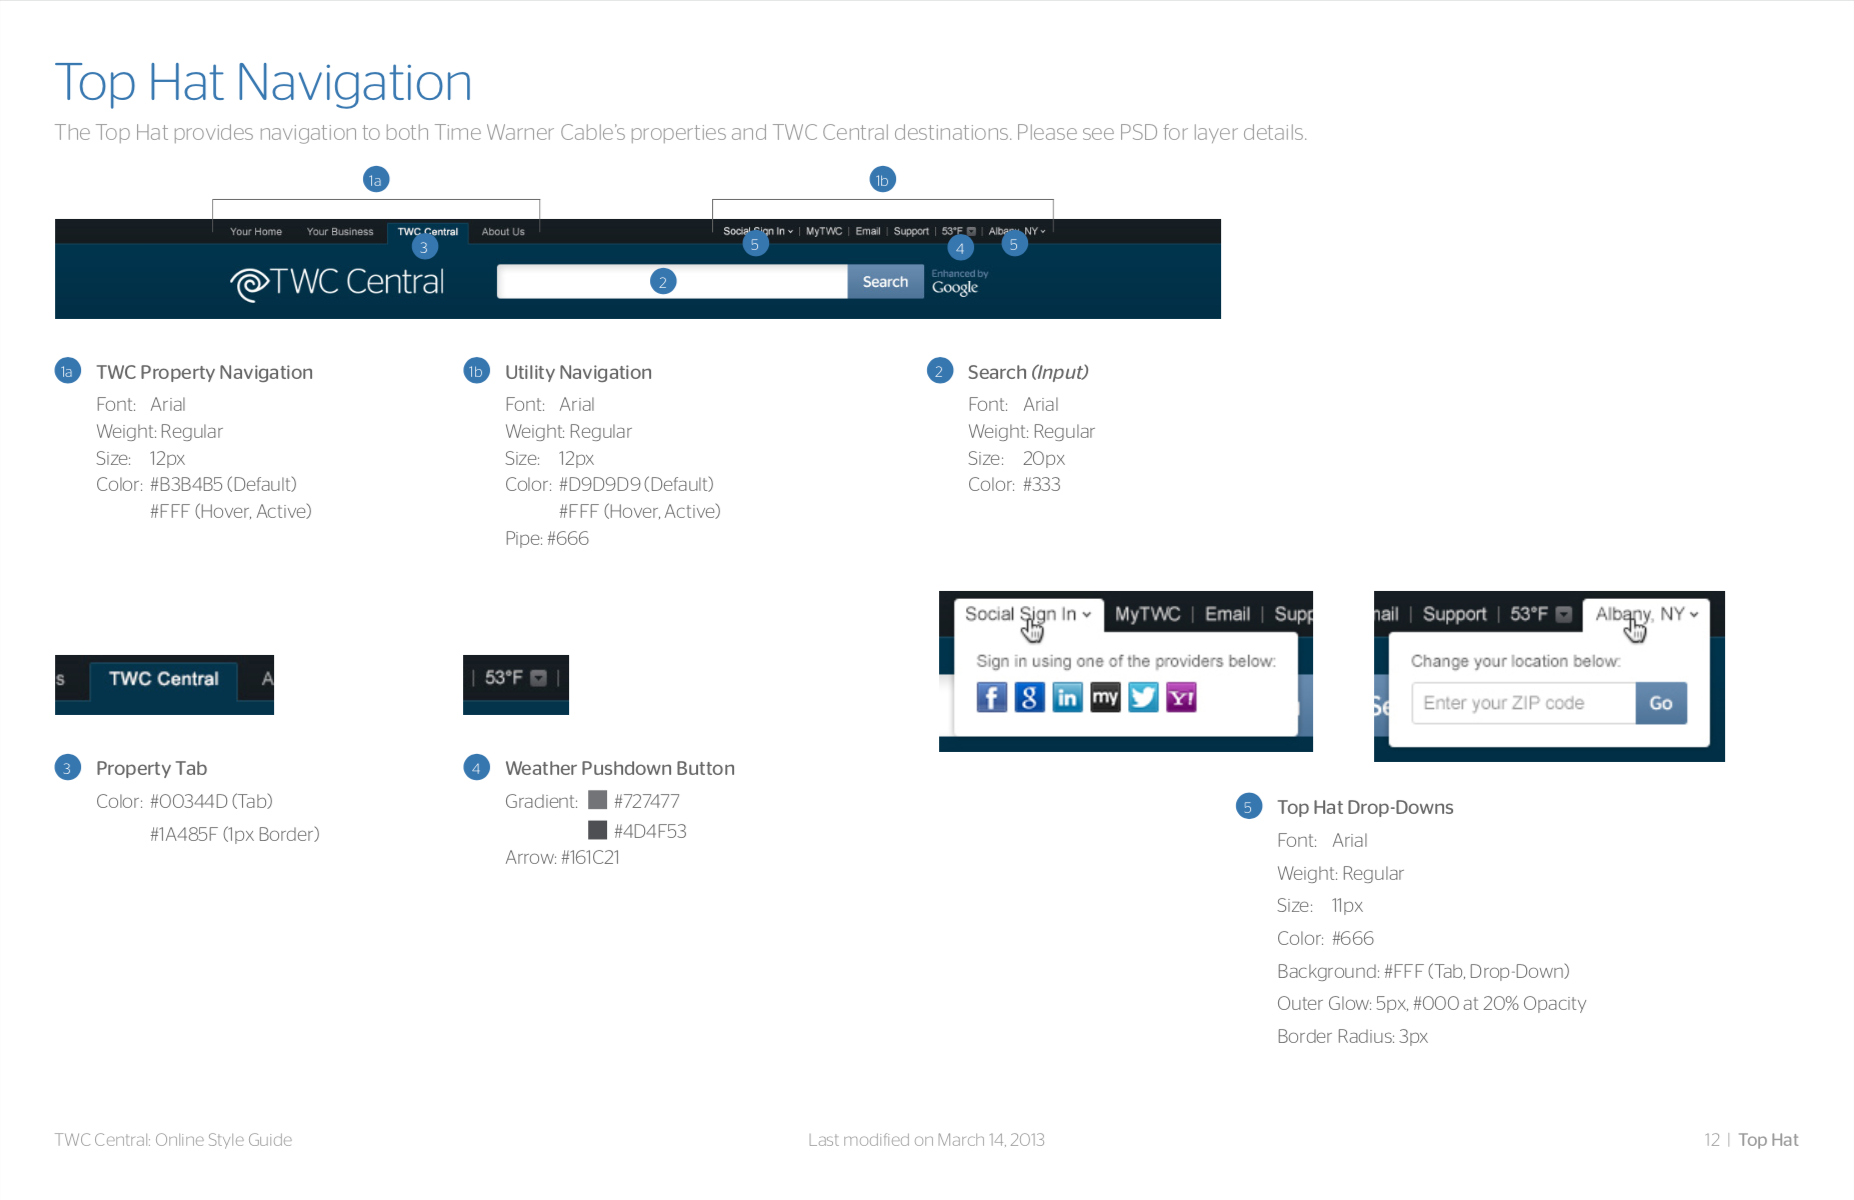 timewarnercable-styleguide-05.png